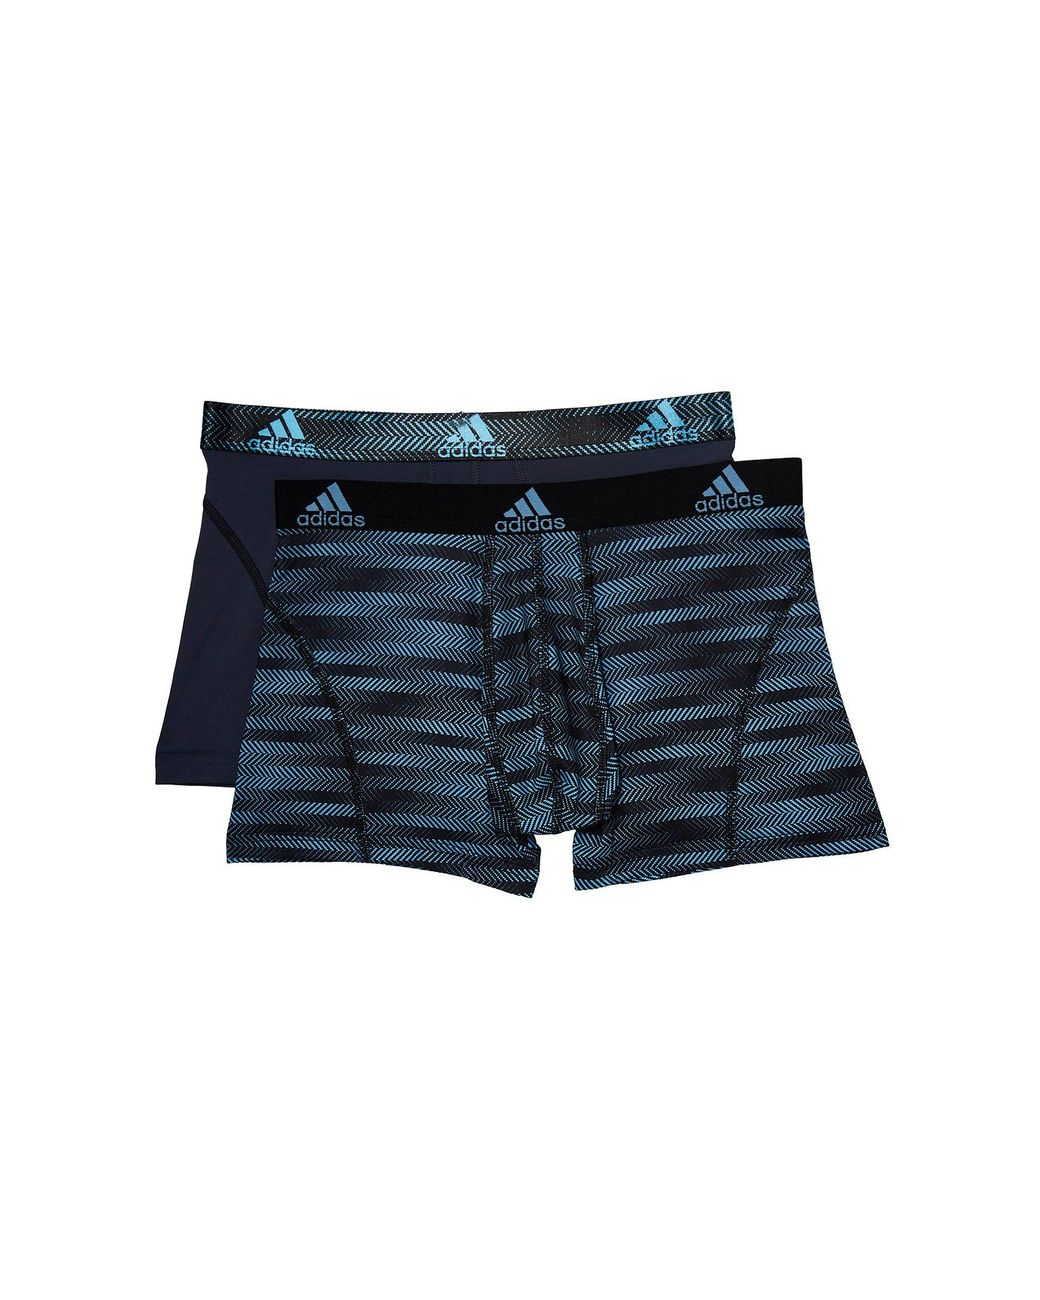 ffc6047ab363 Lyst - adidas Sport Performance Climalite Graphic 2-pack Trunk ...